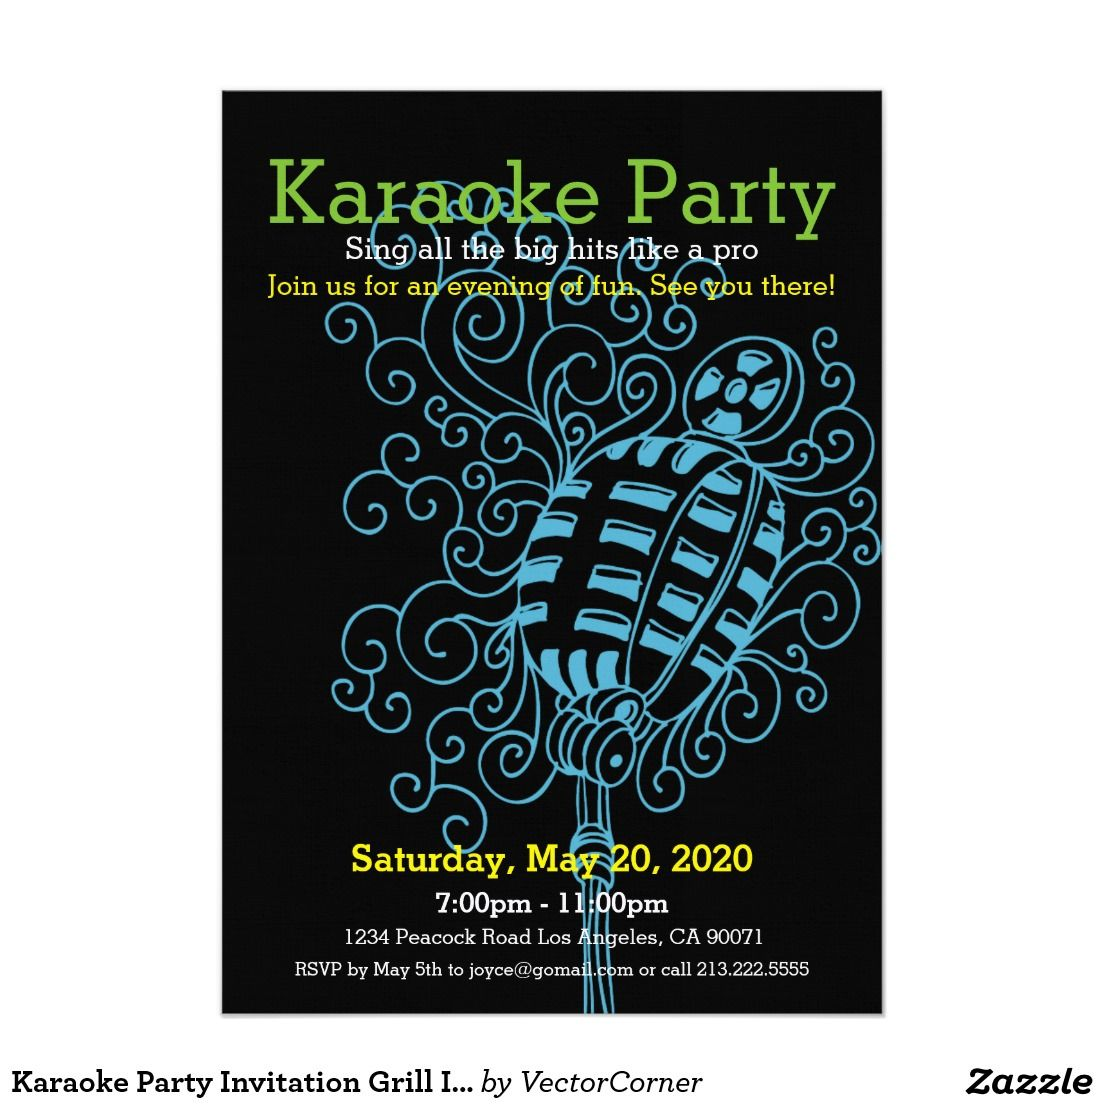 Karaoke Party Invitation Grill Icon | Invitation Cards | Pinterest ...